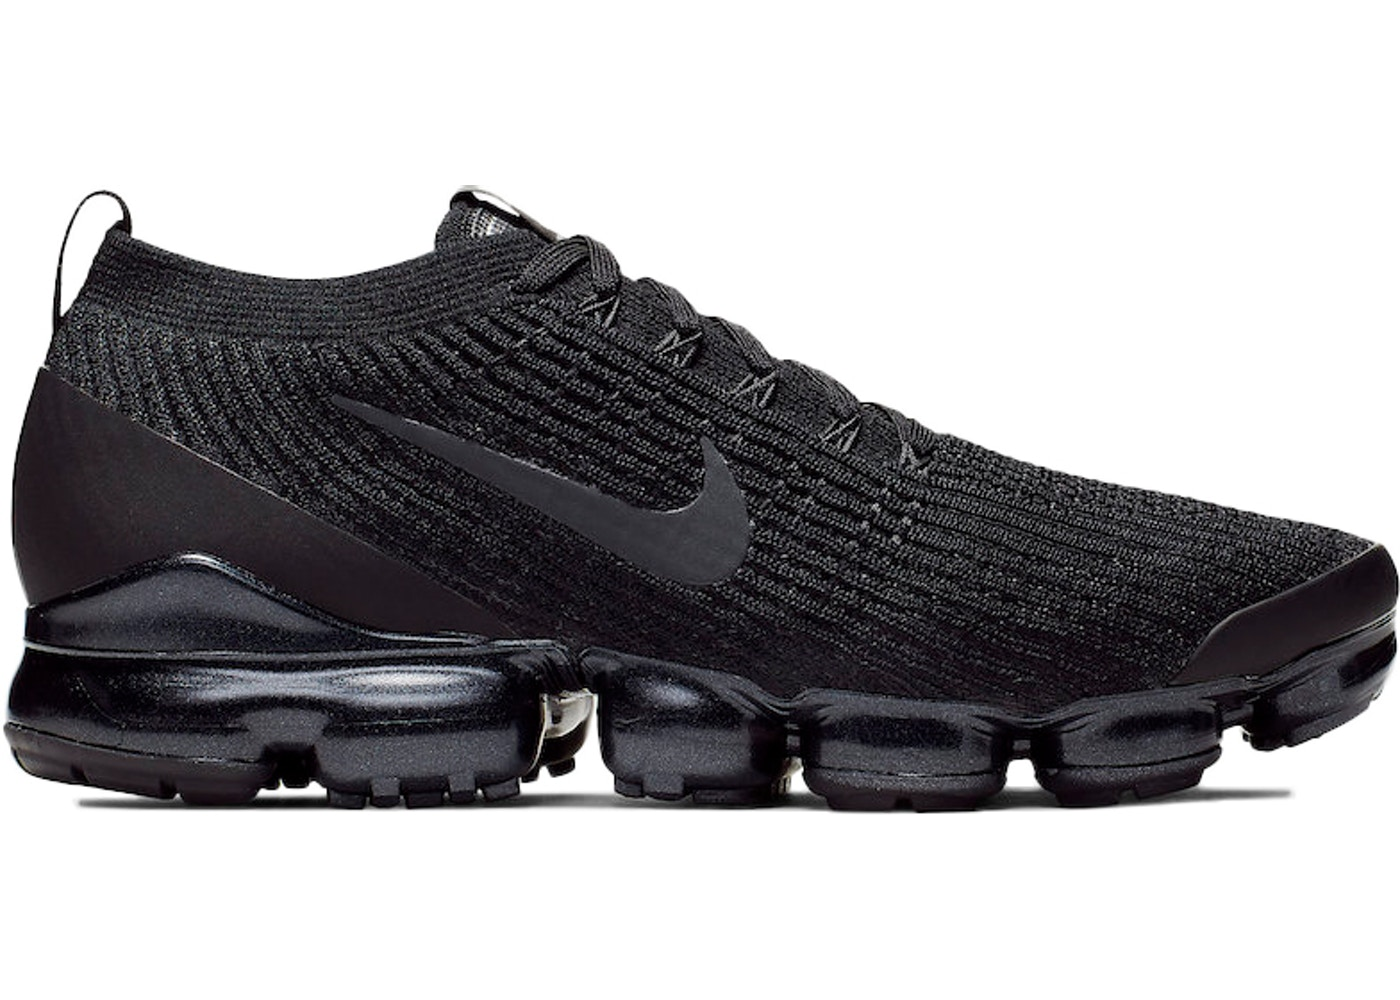 5871aed5f0 Air VaporMax Triple Black 3.0 - AJ6900-004